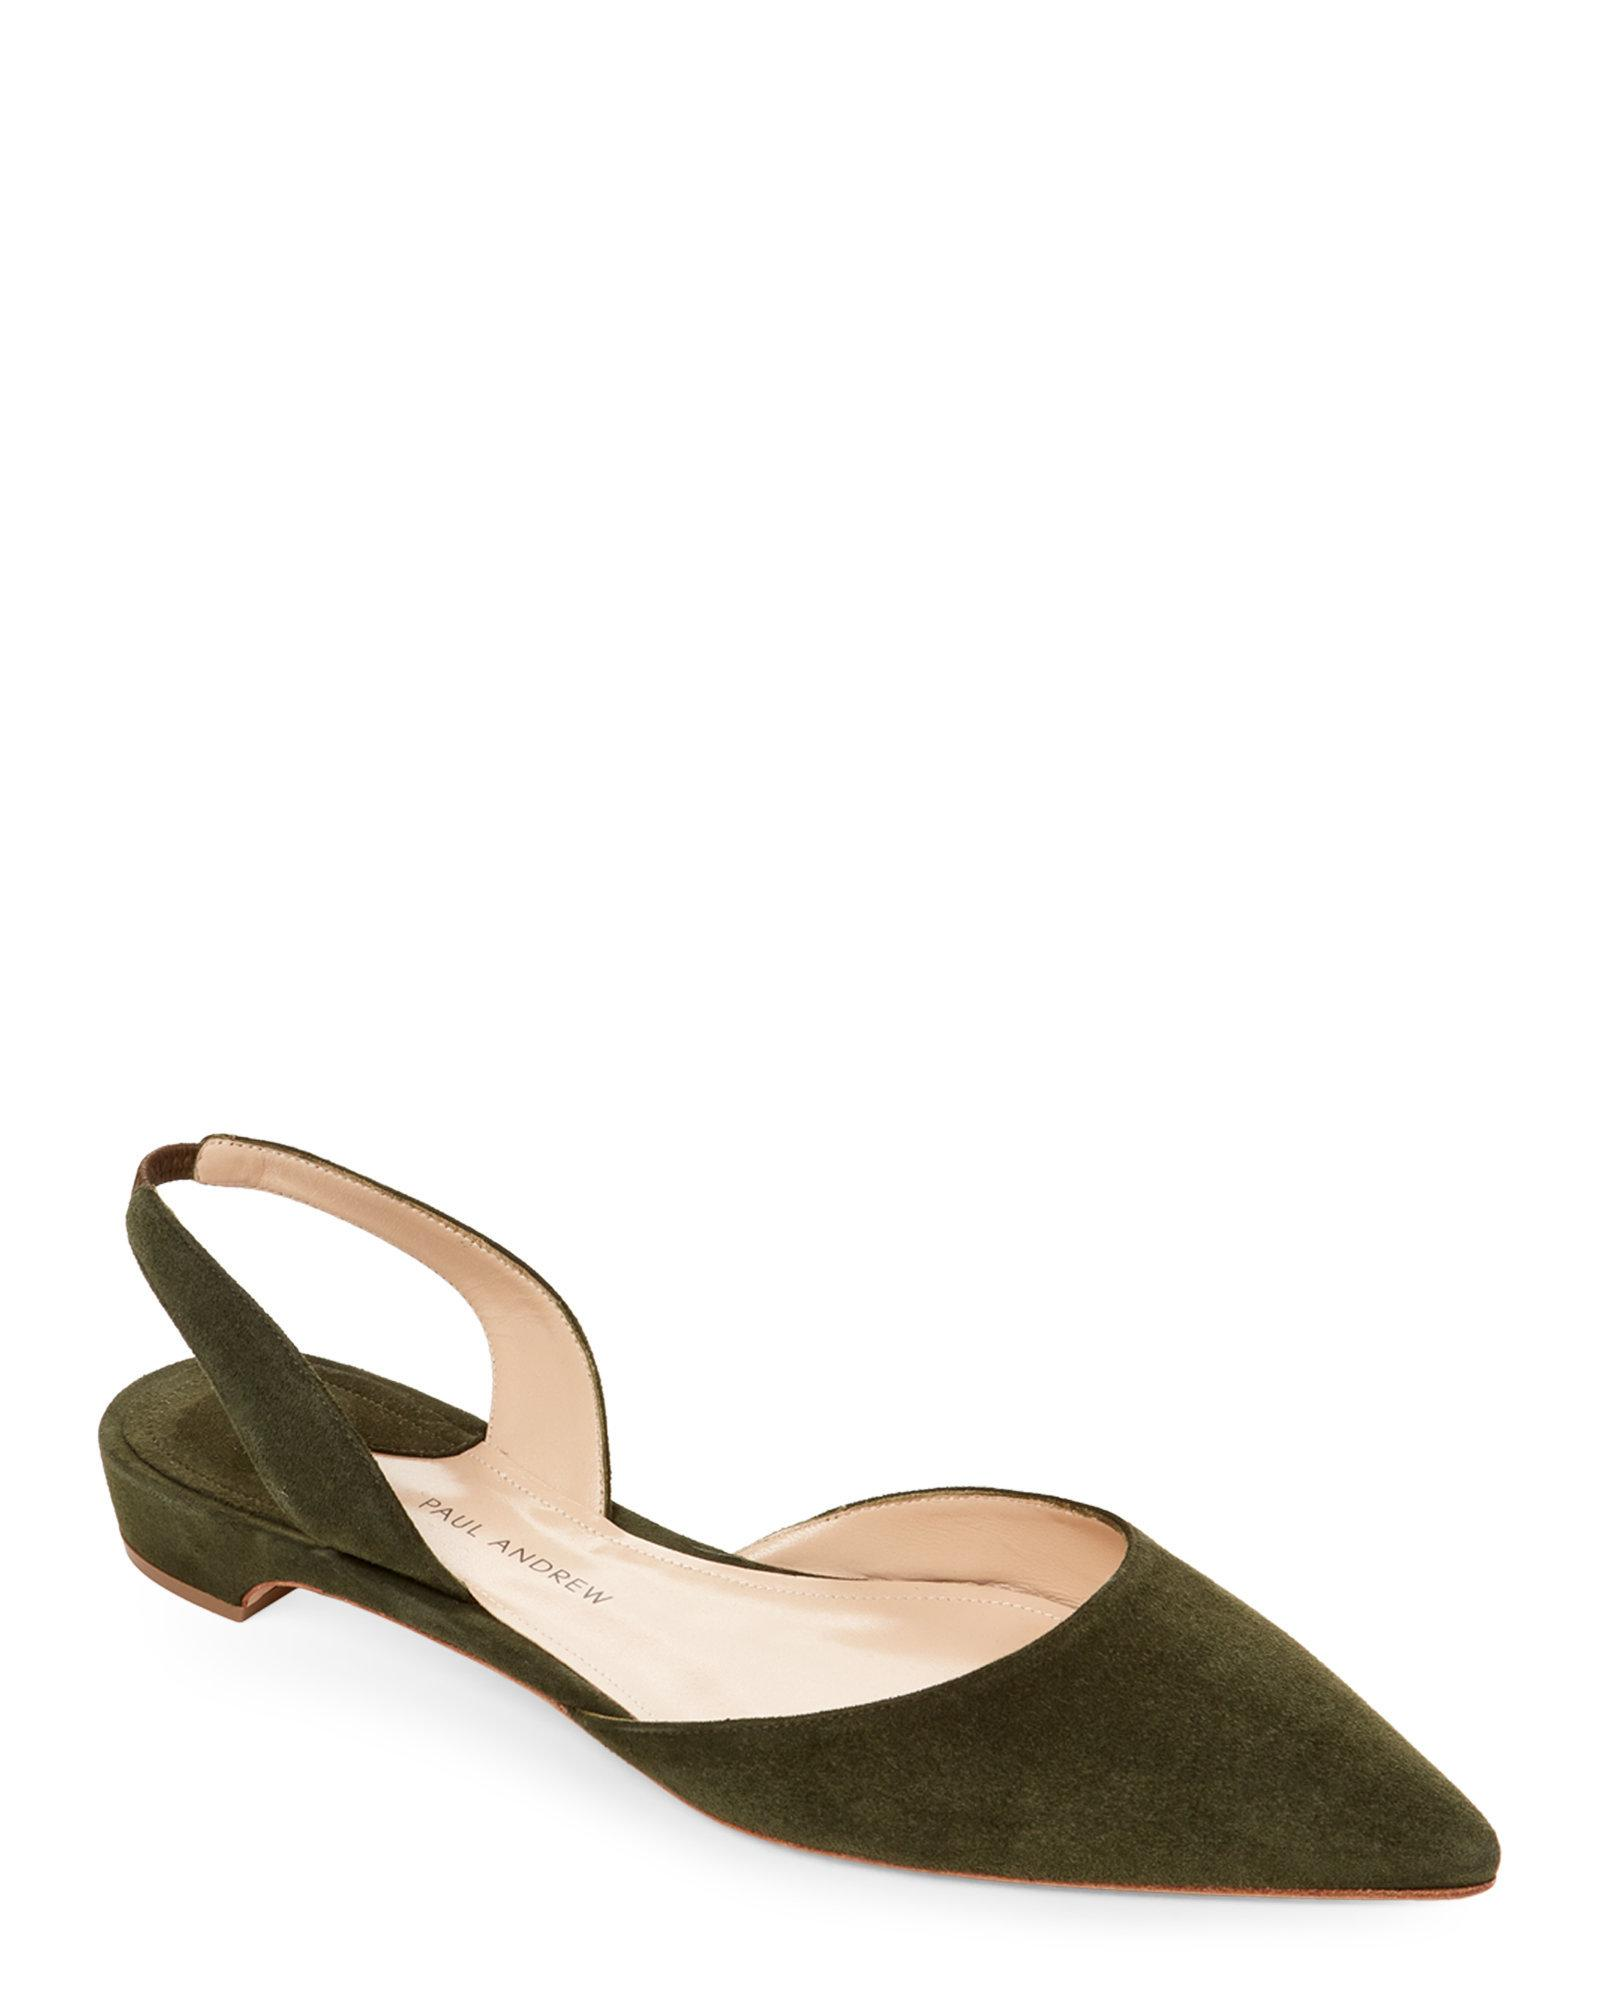 Paul Andrew 2018 Rhea Slingback Flats w/ Tags cheap visit free shipping Manchester many kinds of for sale 100% authentic best seller online 9Kk9V